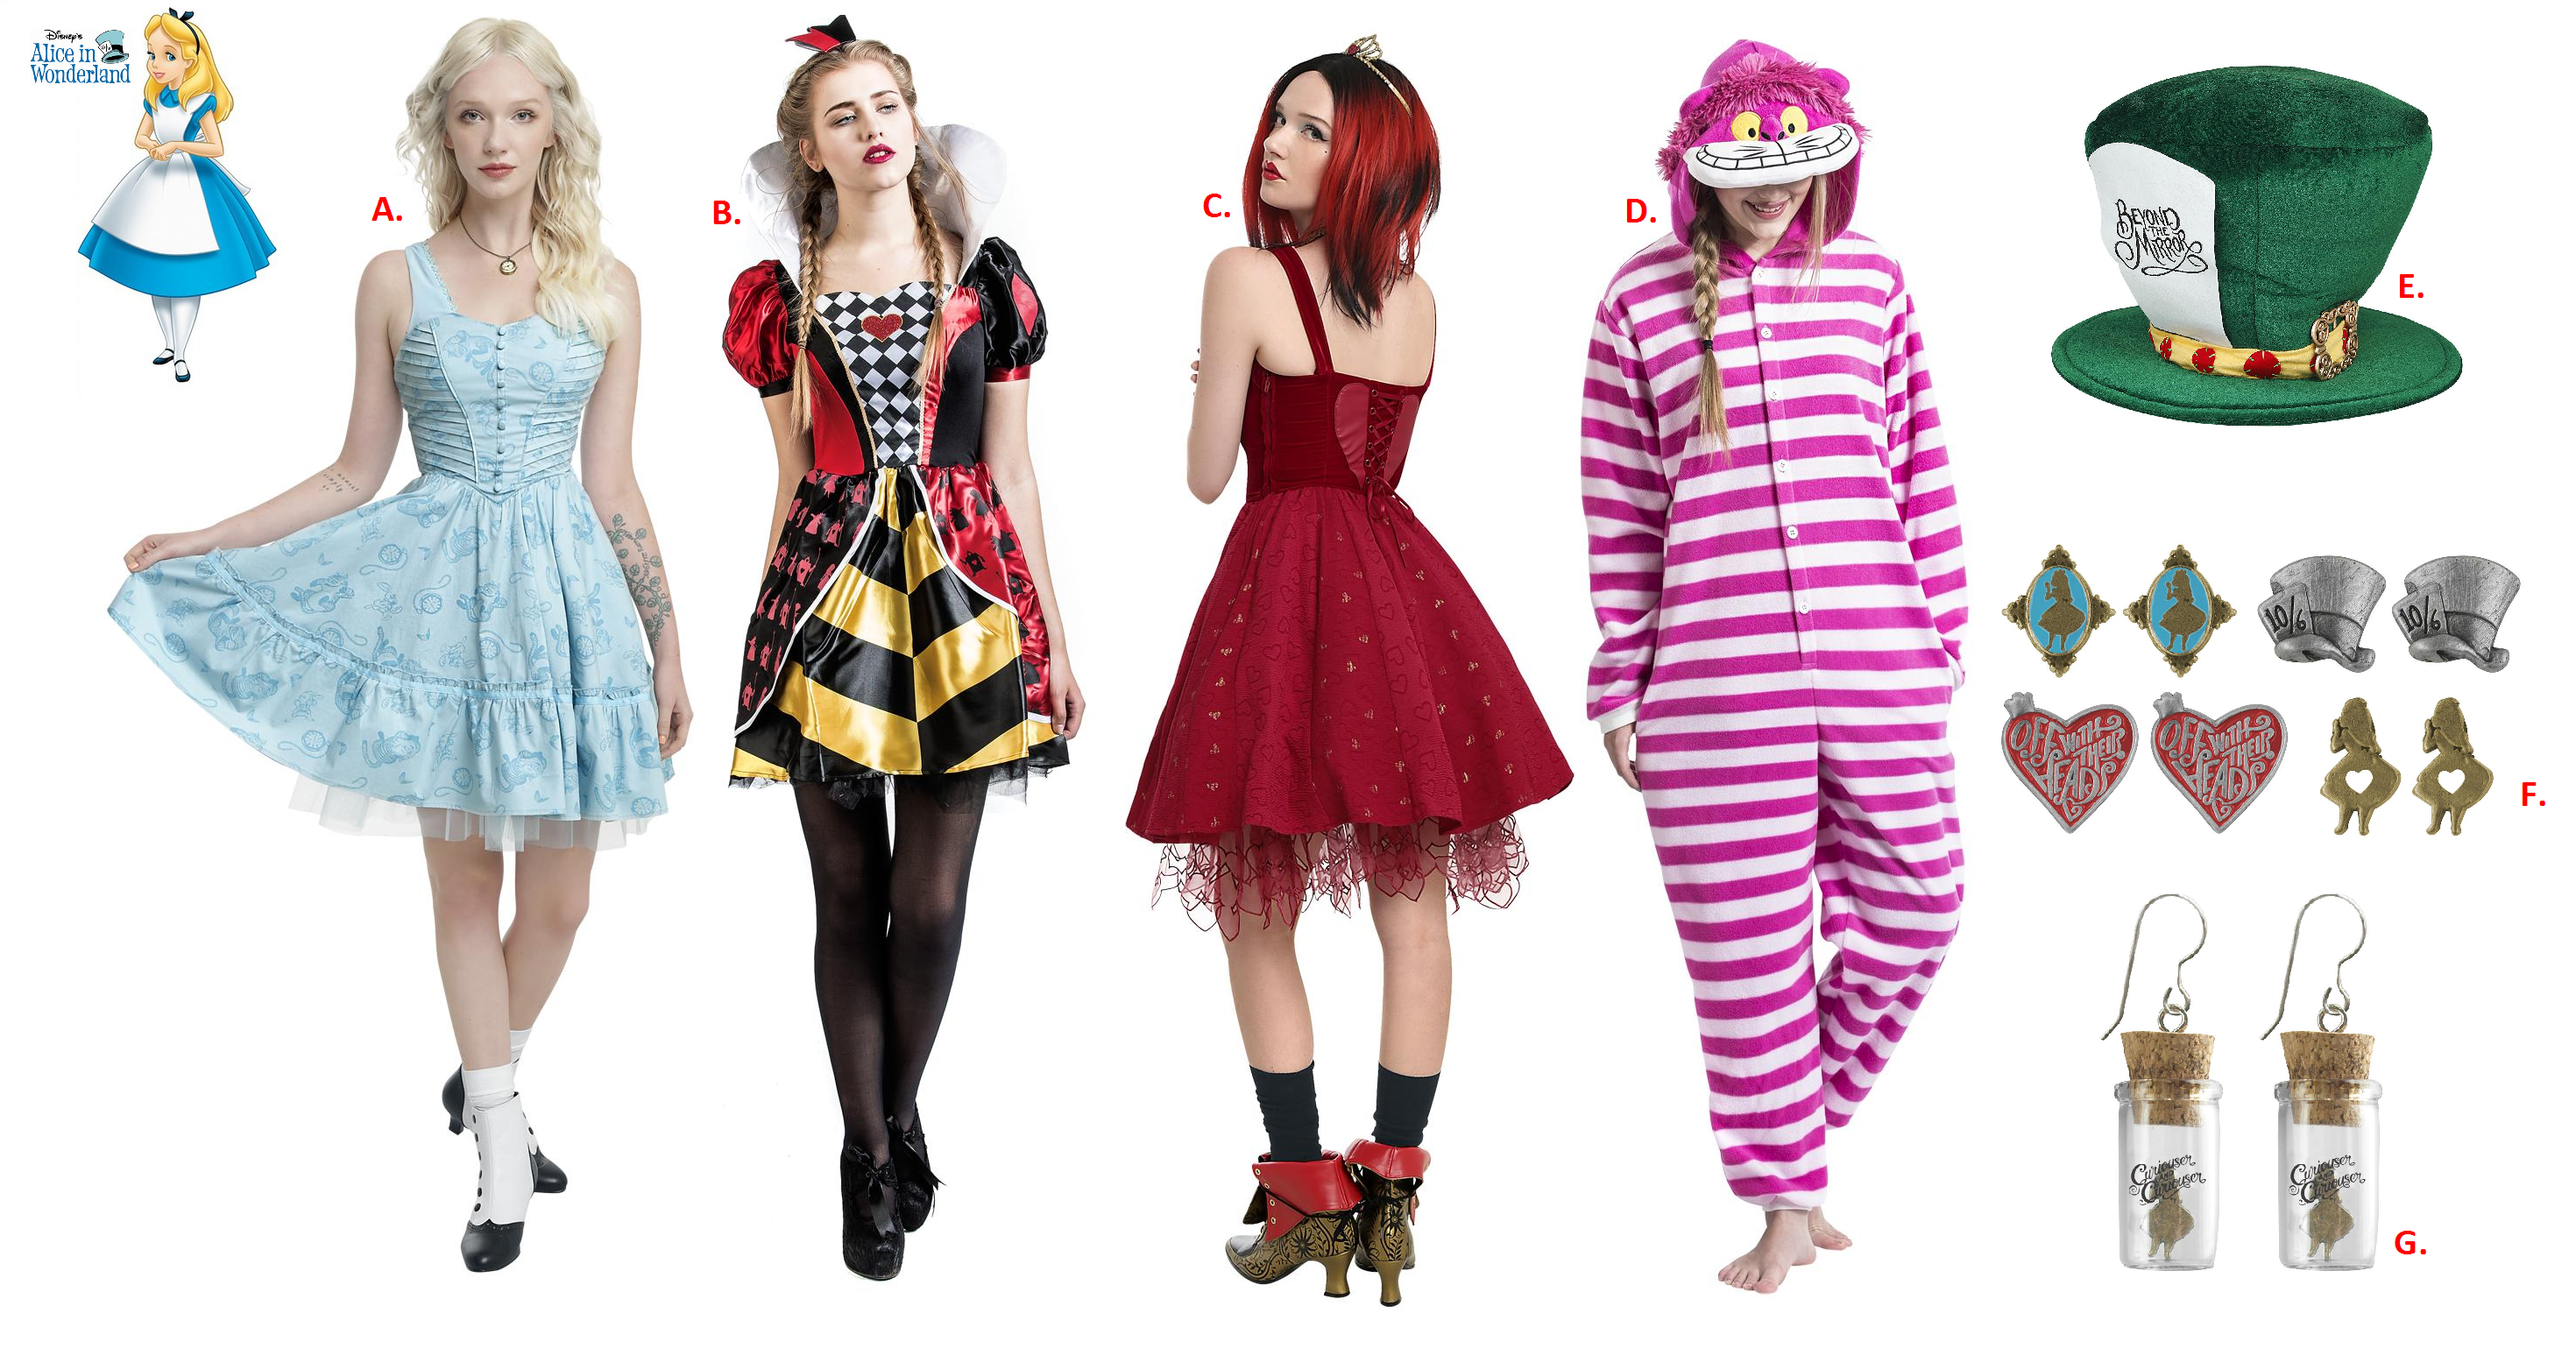 alice in wonderland cosplay ideas from emp